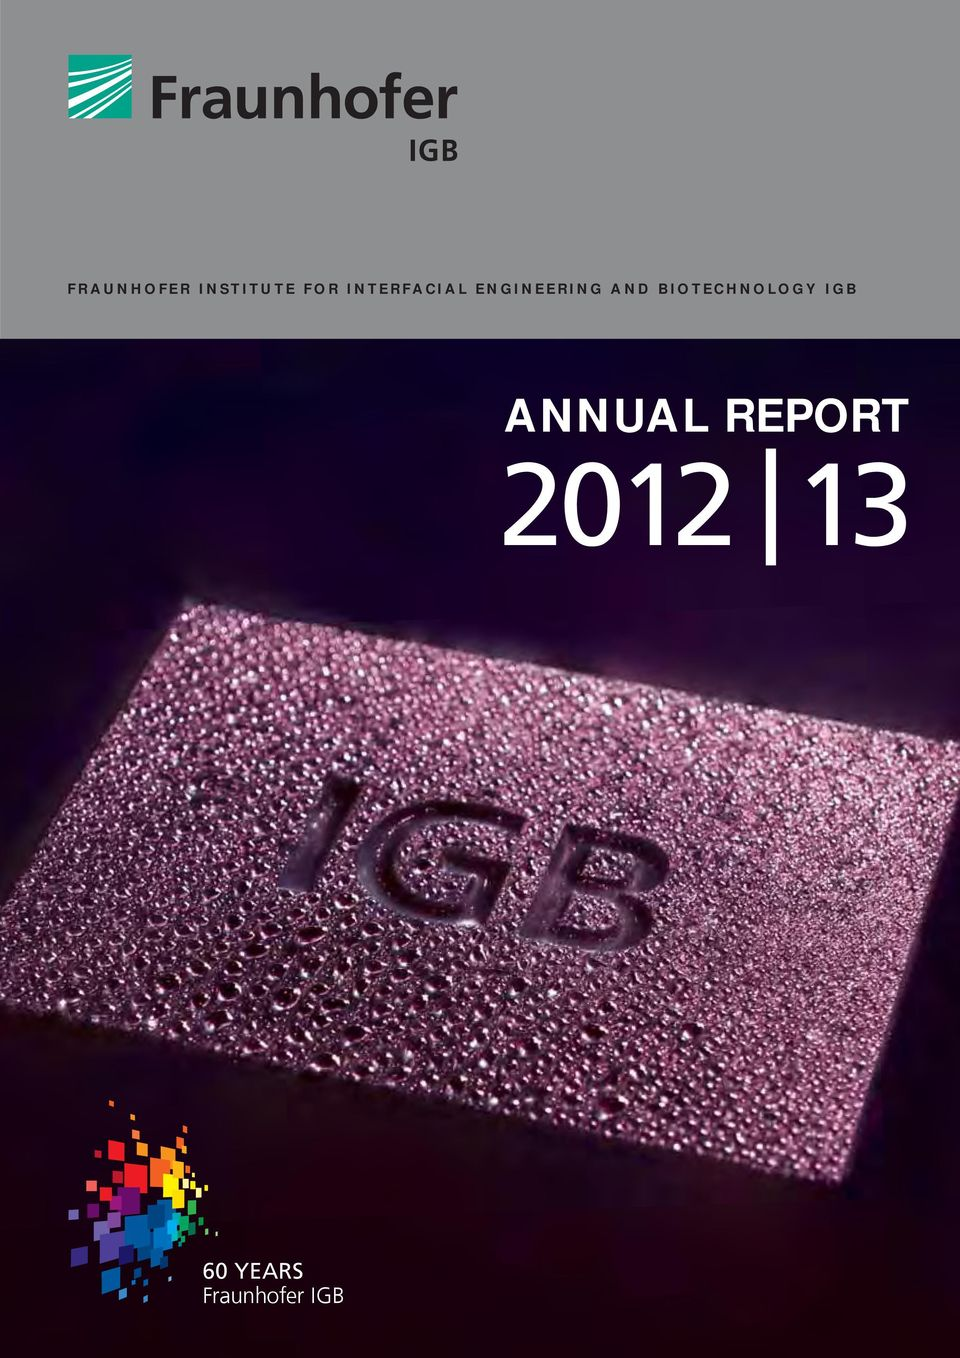 BIOTECHNOLOGY IGB ANNUAL